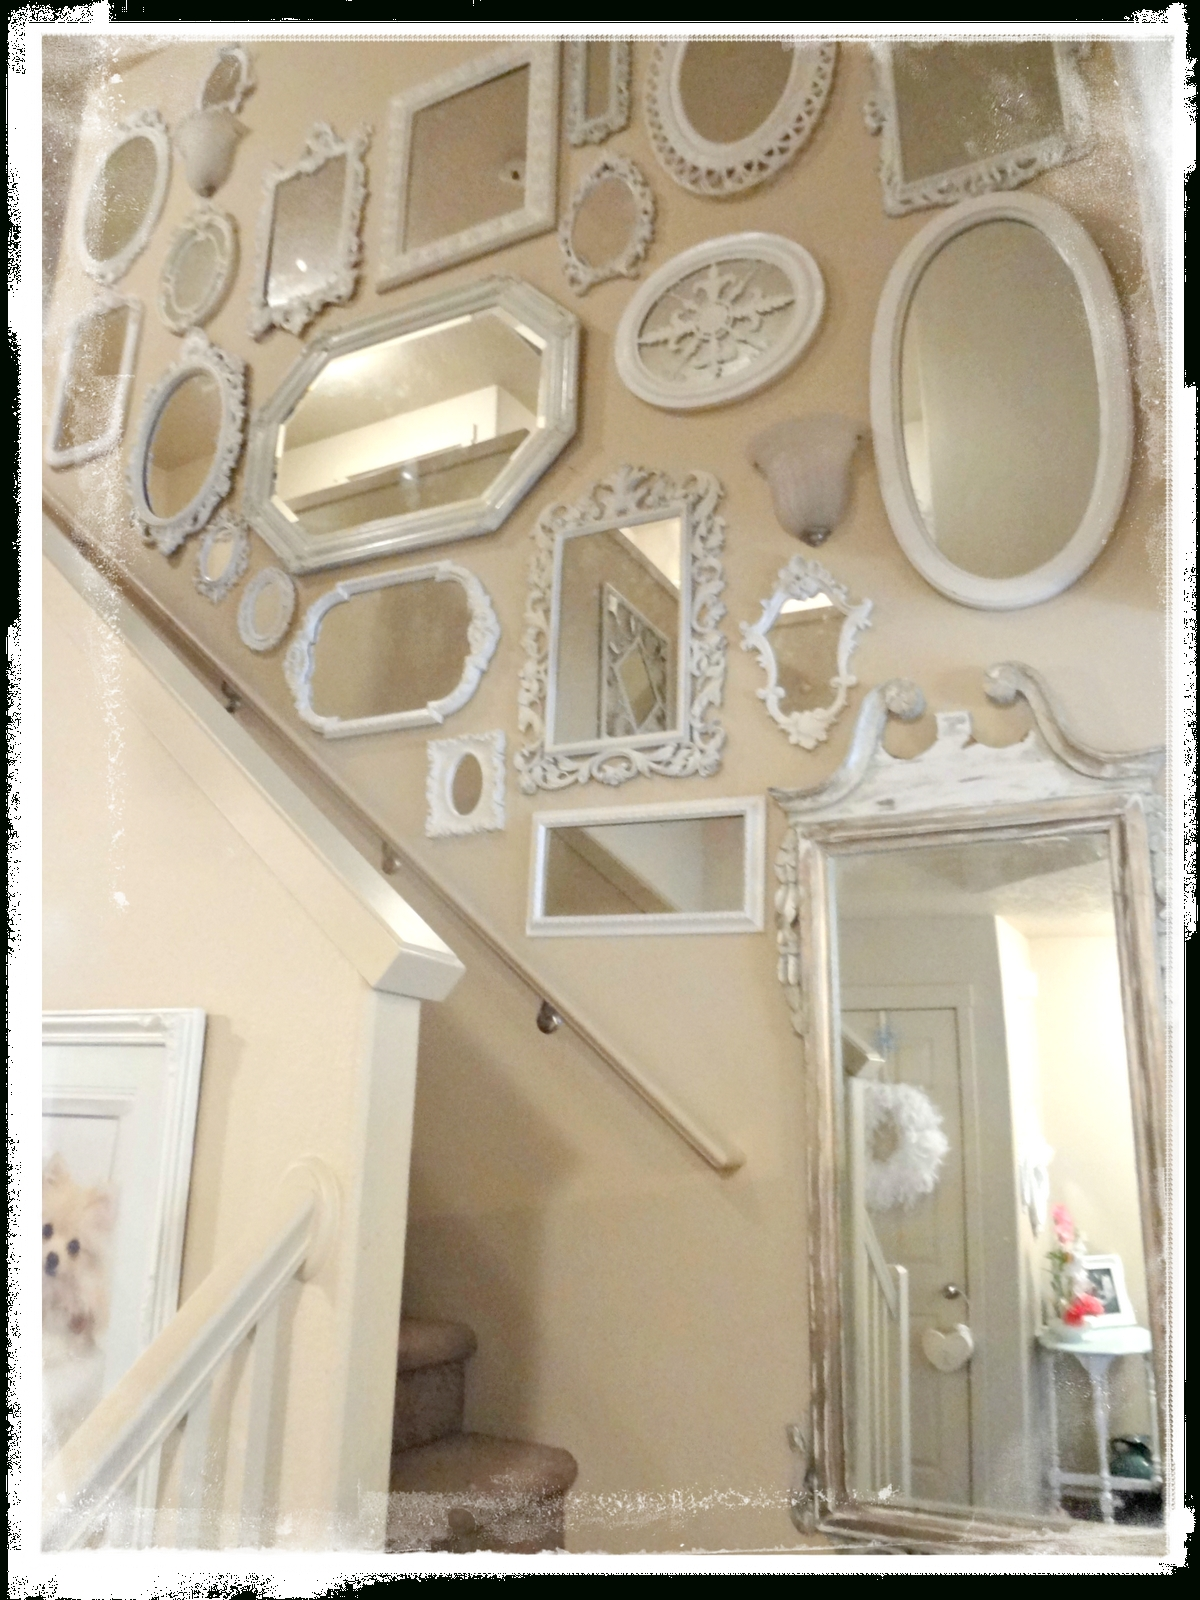 Shabby Chic Mirror ~ Holst throughout Vintage Shabby Chic Mirrors (Image 17 of 25)